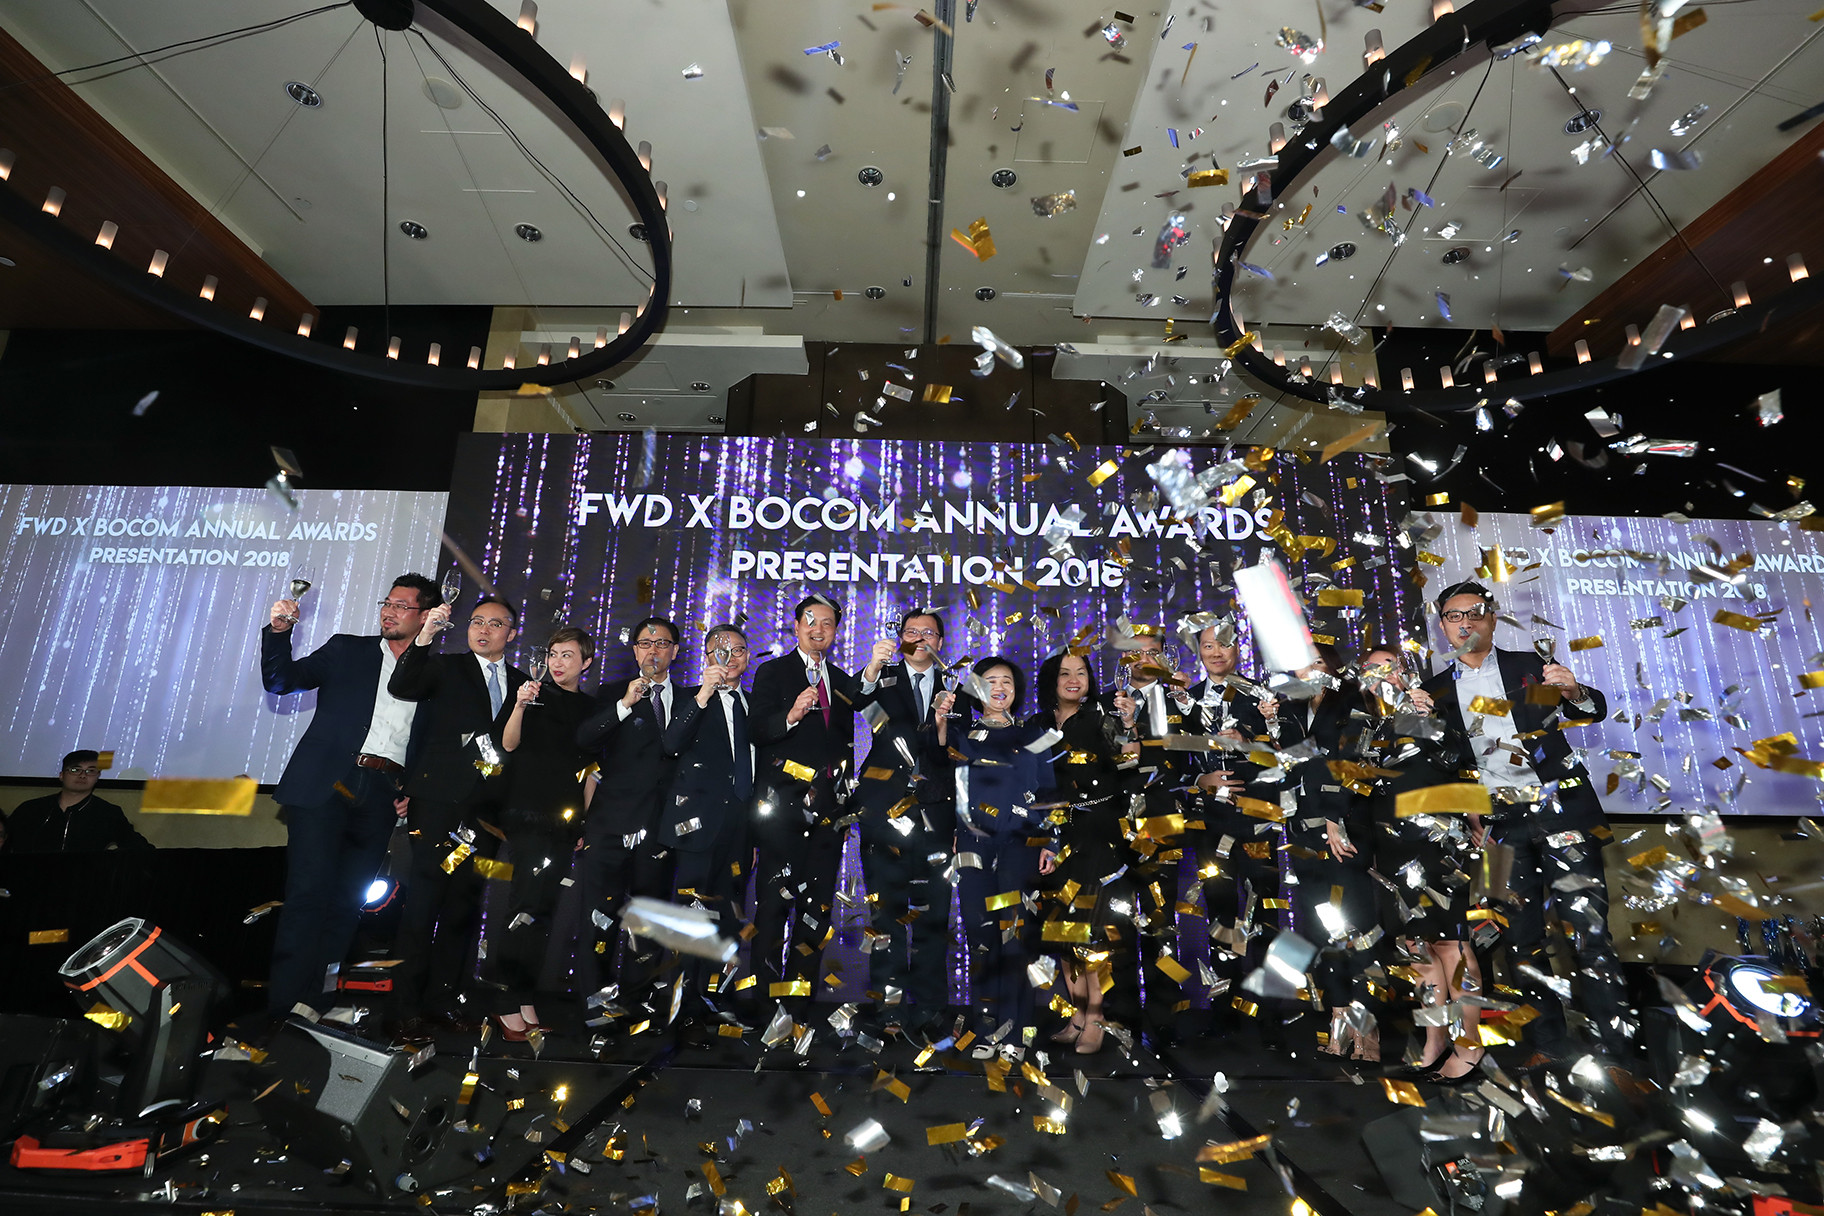 FWD x BOCOM stage with confetti and management with champagne